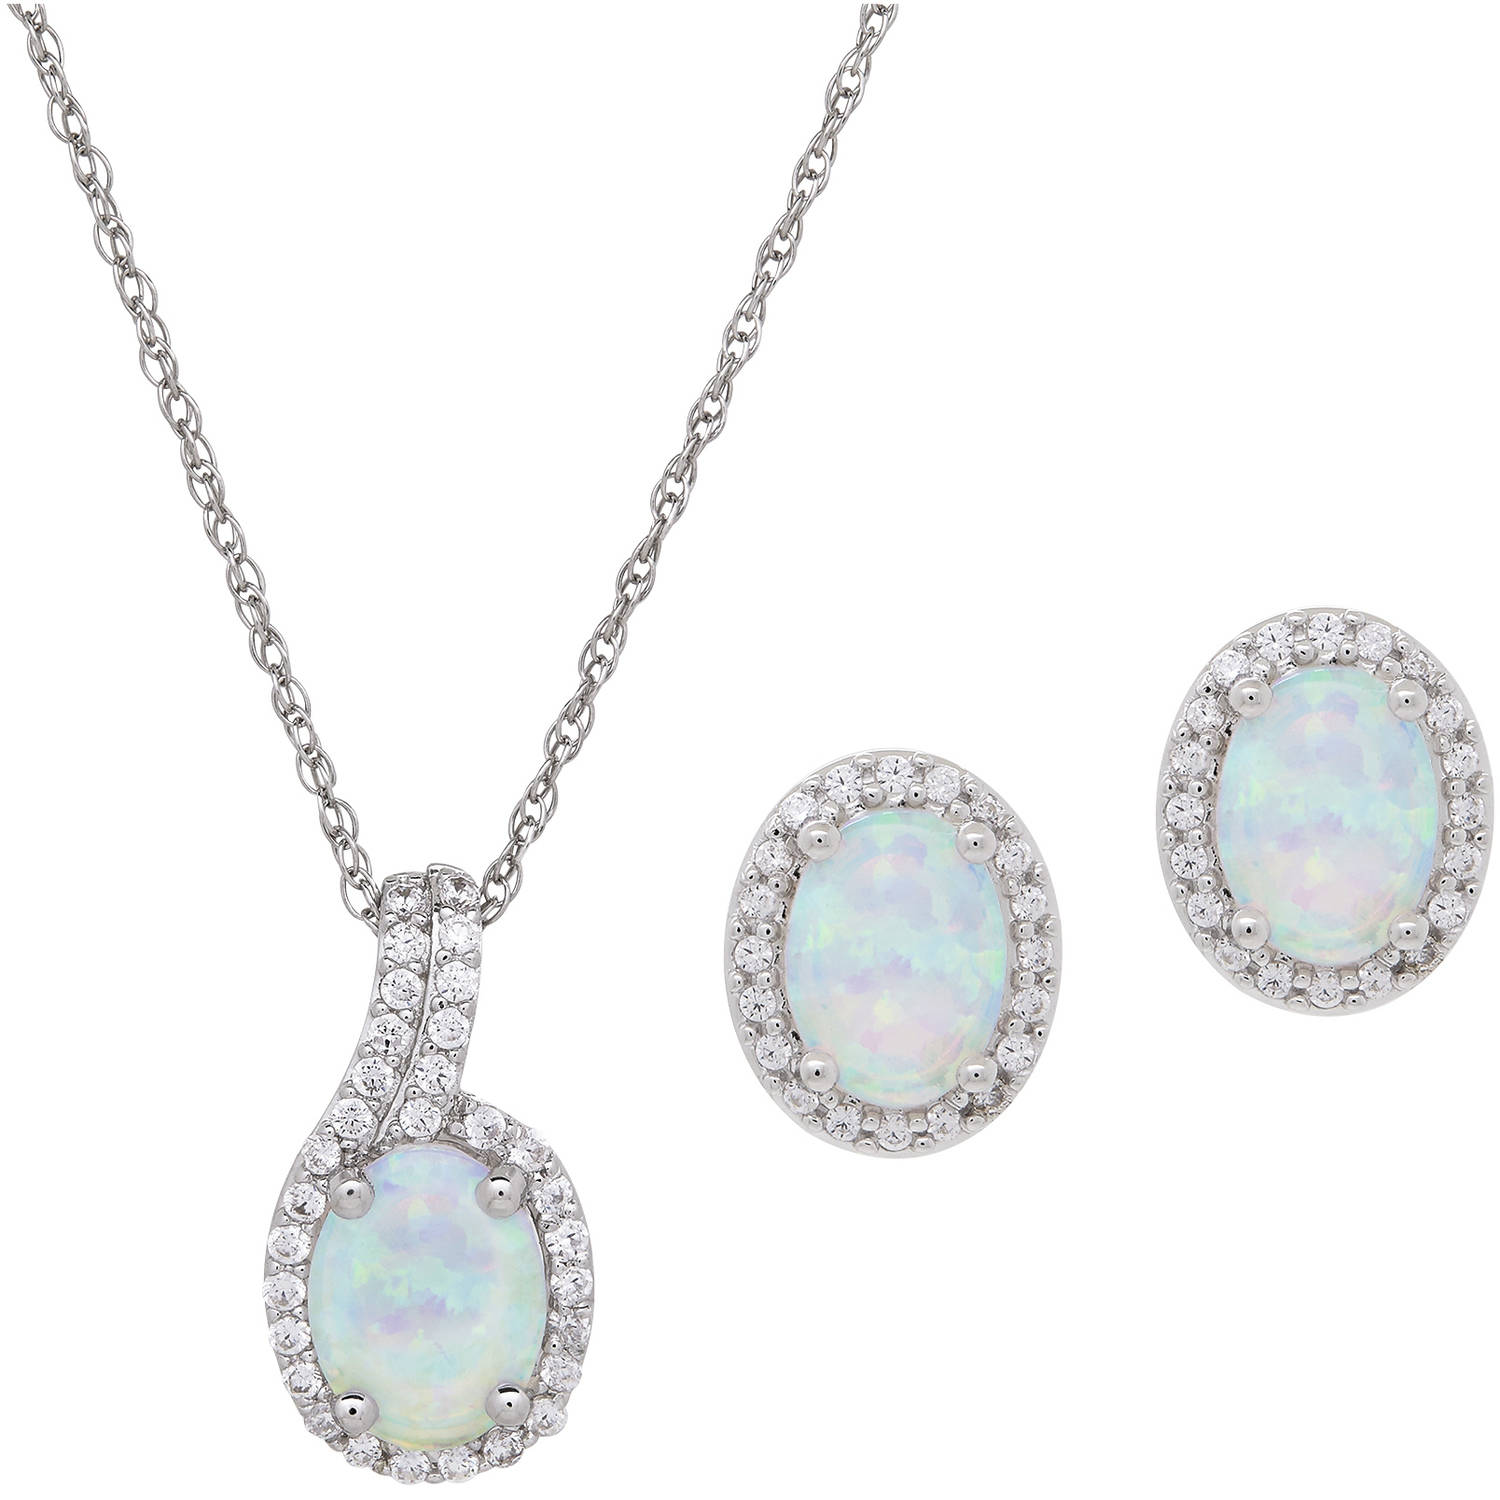 Oval-Cut Created Opal & Cubic Zirconia Accent Sterling Silver Pendant and Earrings Set, 18 Chain by Richline Group Inc